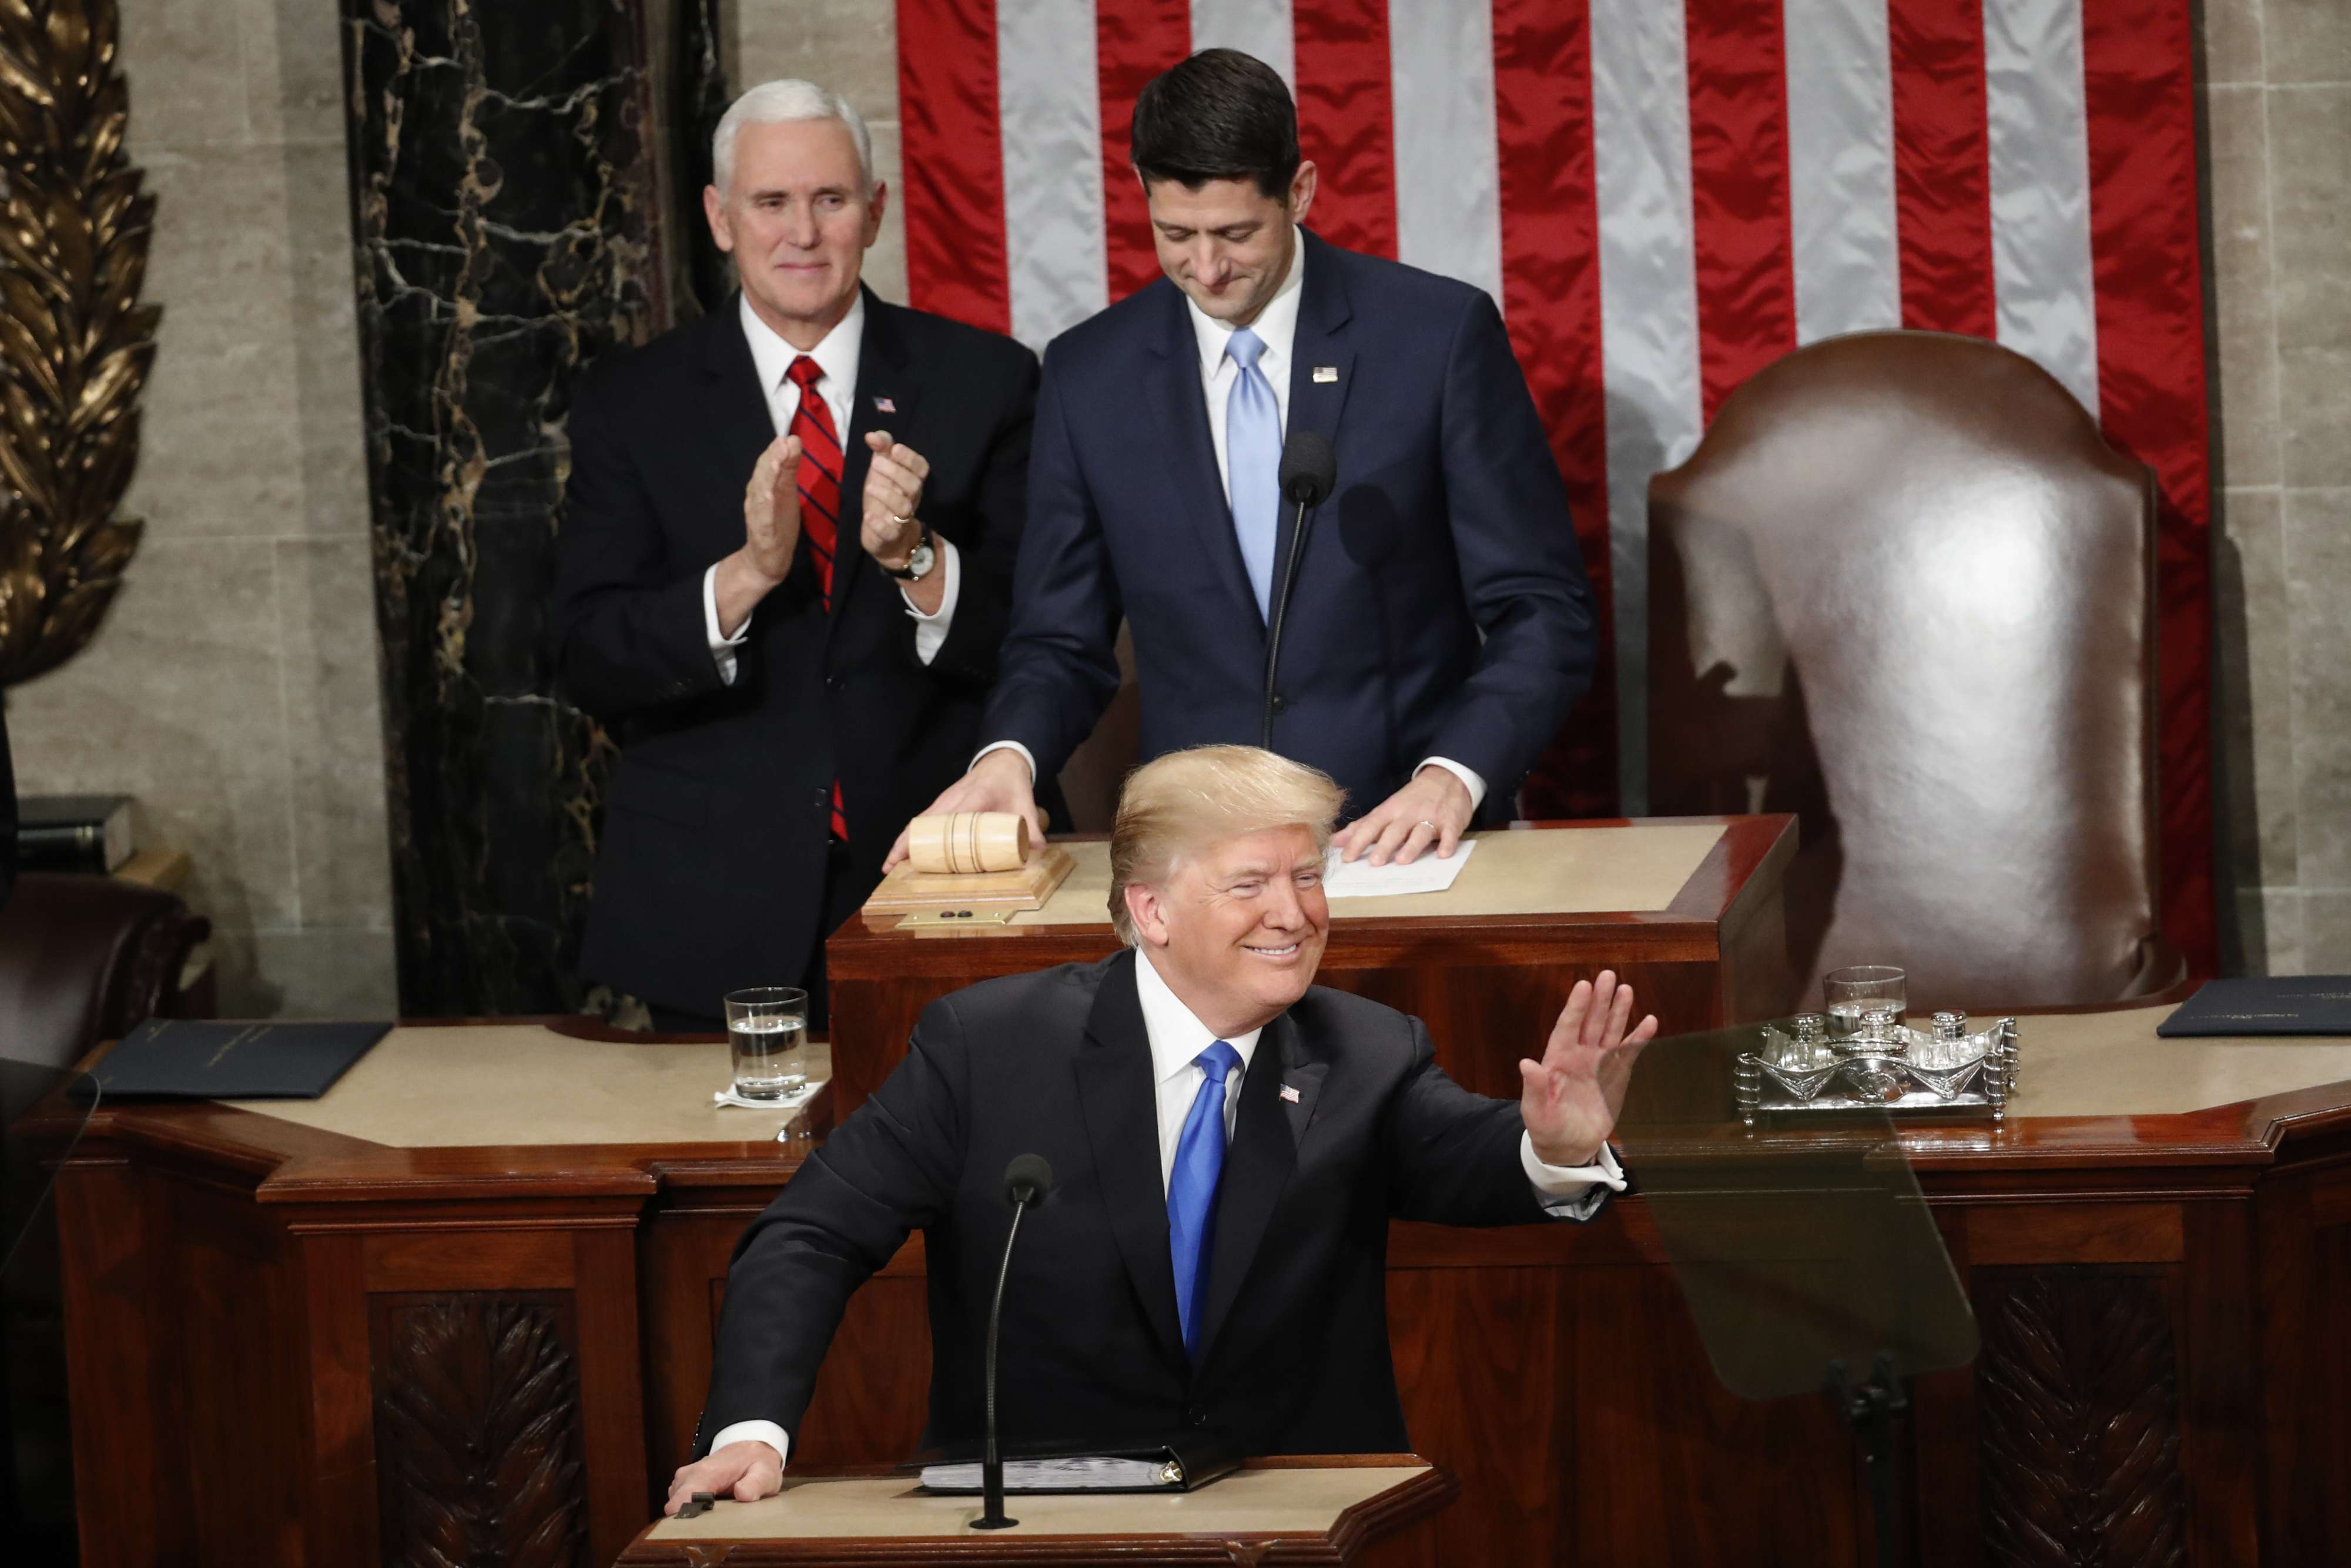 Limited appeal. US President Donald Trump waves towards the Republican side of the House Chamber before his State of the Union address on Capitol Hill, on January 30. (AP)